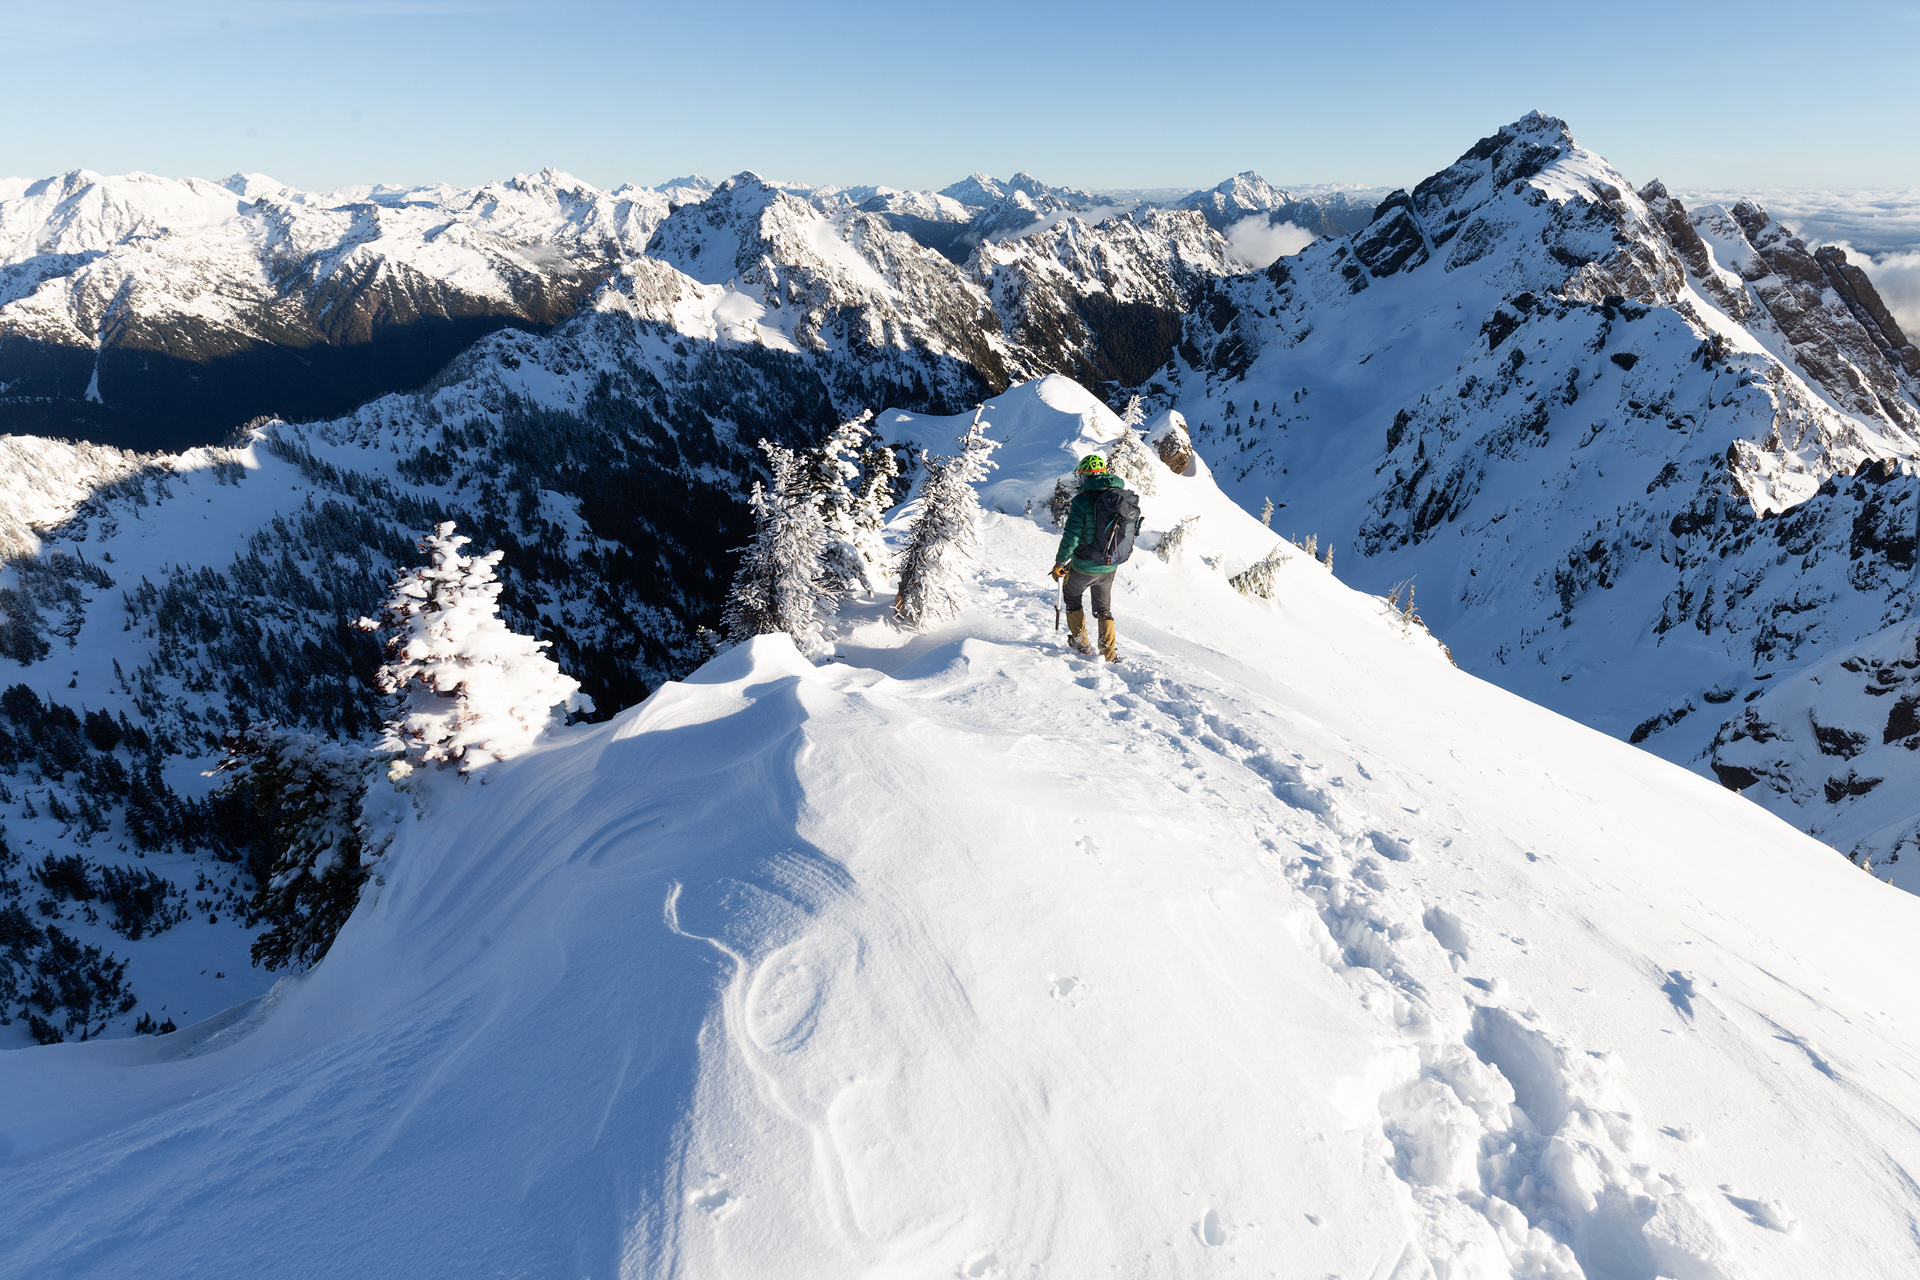 On the summit of a snowy Mt. Ellinor in Olympic National Forest